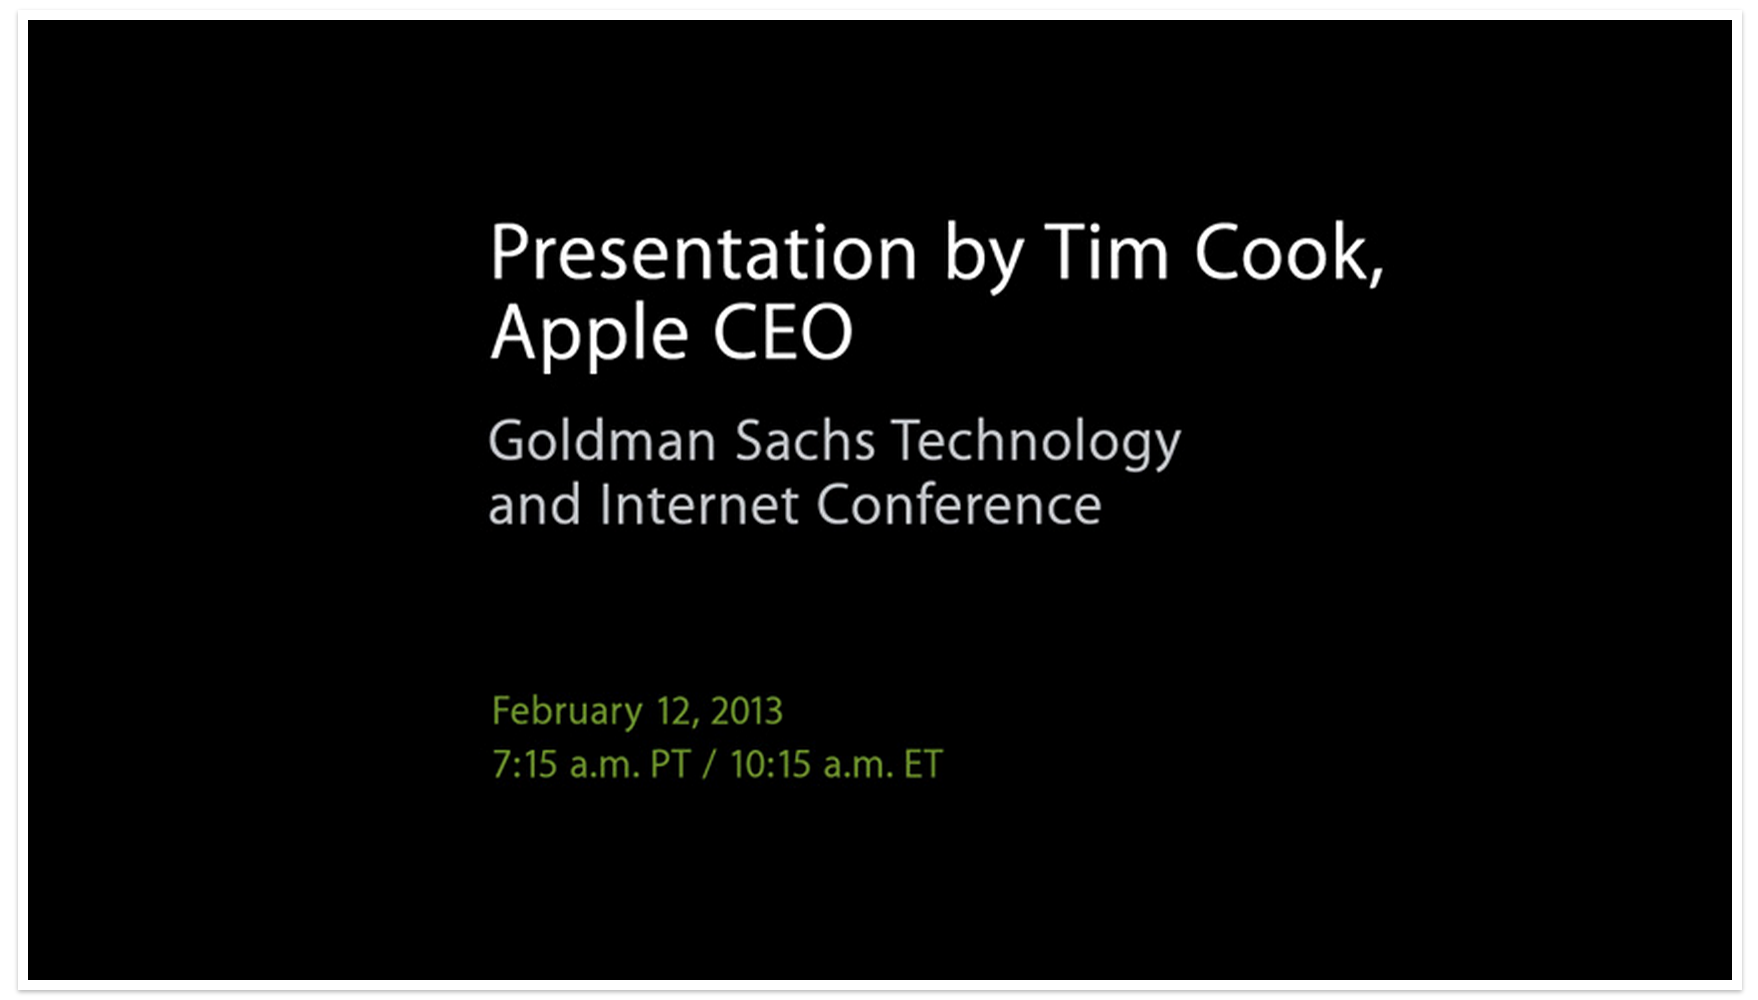 Tim-Cook-Presentation-GoldmanSachs-2013